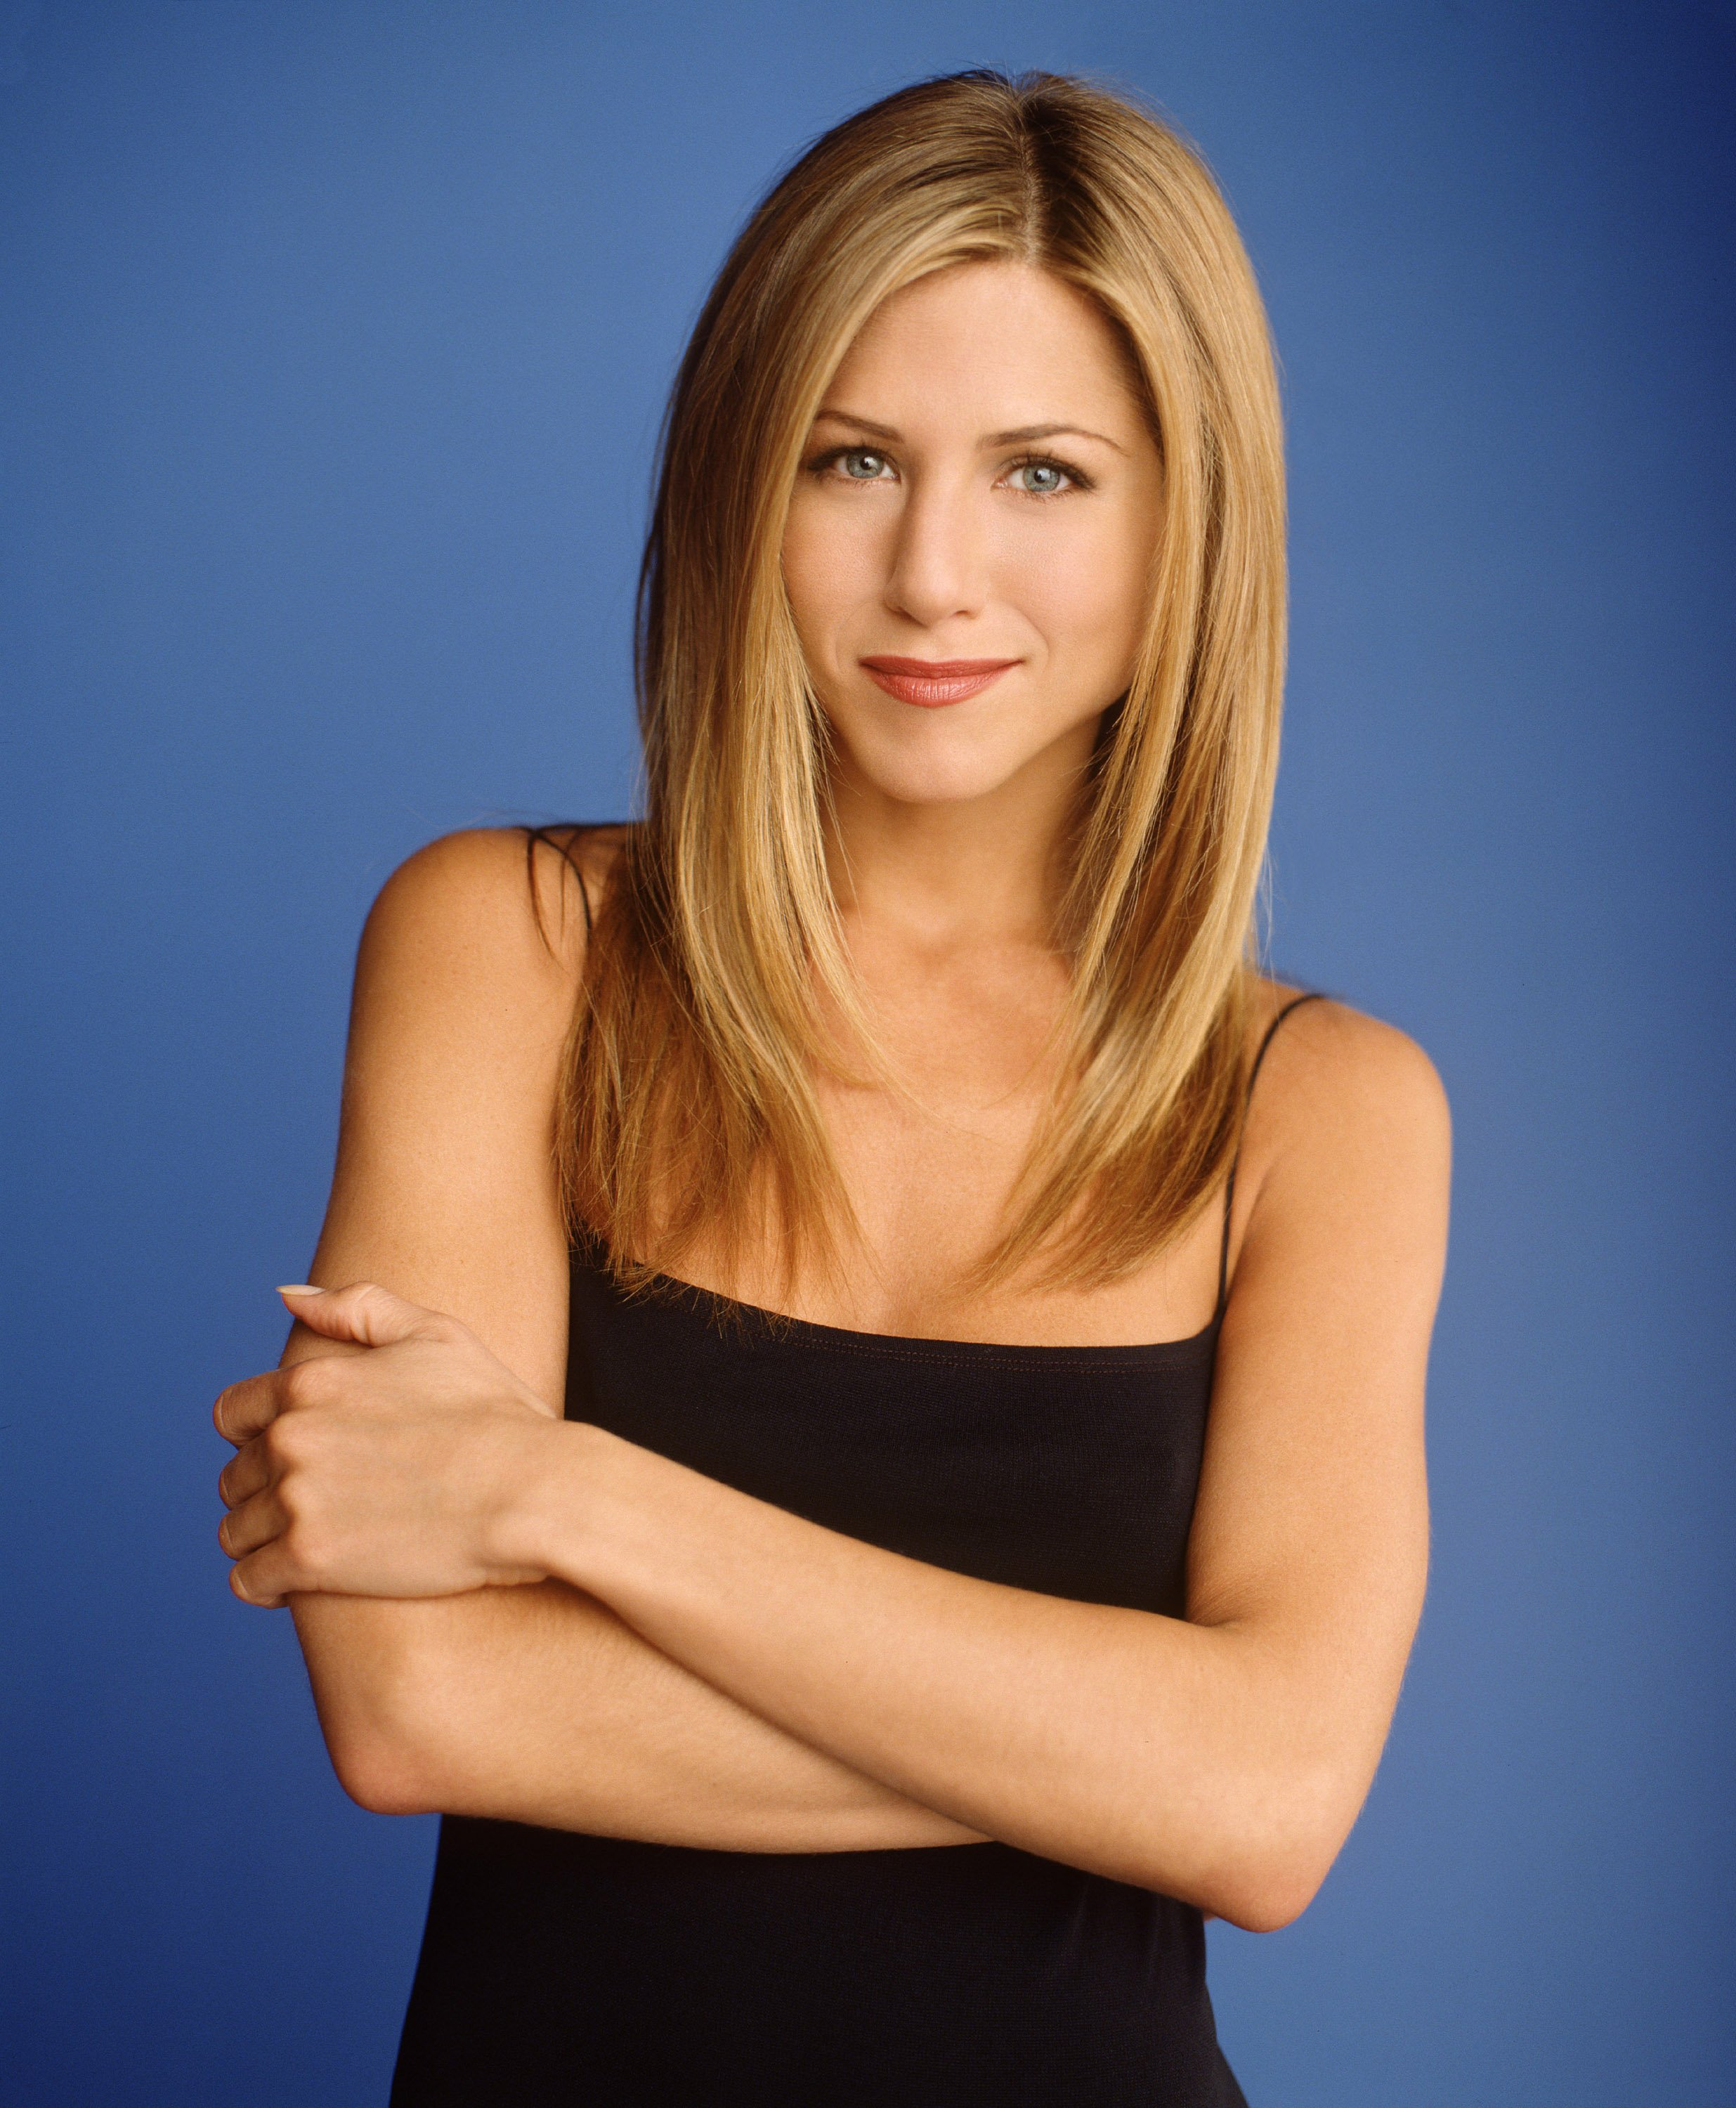 """Jennifer Aniston star as Rachel Green of NBC's comedy series """"Friends."""" 